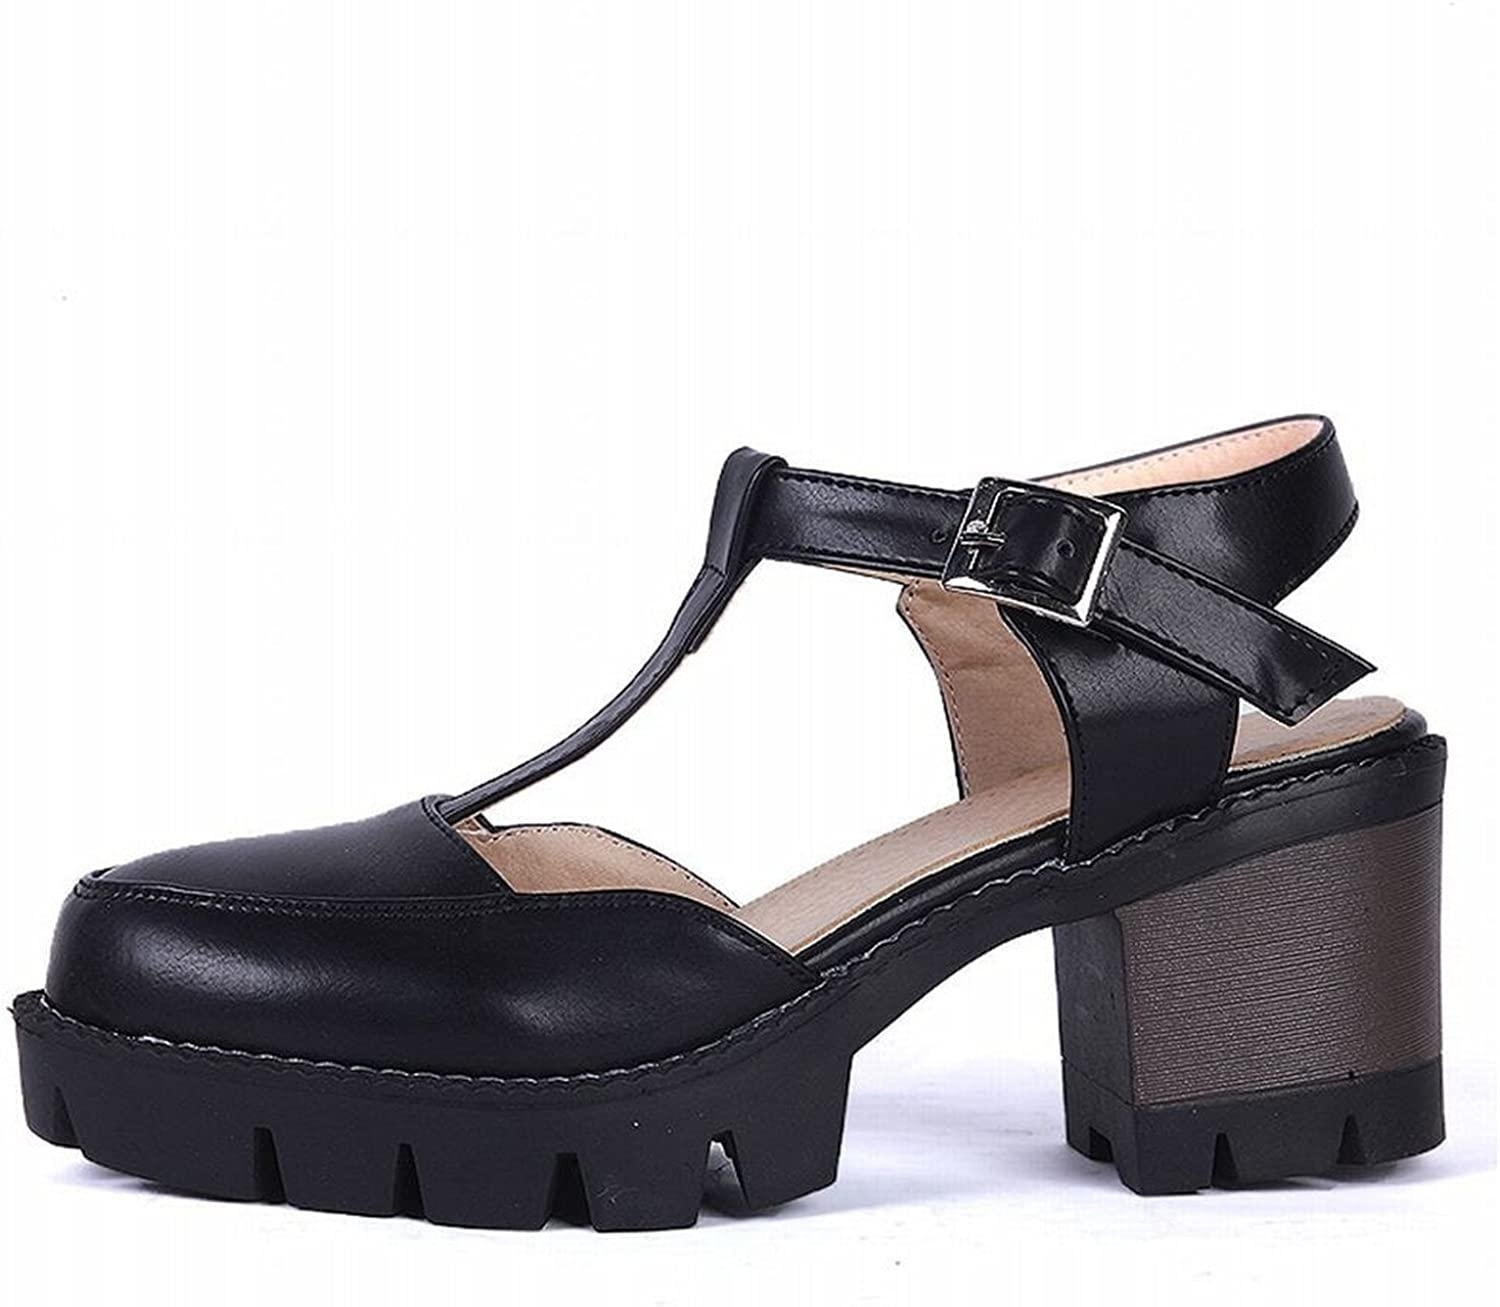 WANabcMAN Comfortable Women's T-Strap Buckle Retro Fashion Date Platform Chunky Mid Heel Sandals shoes